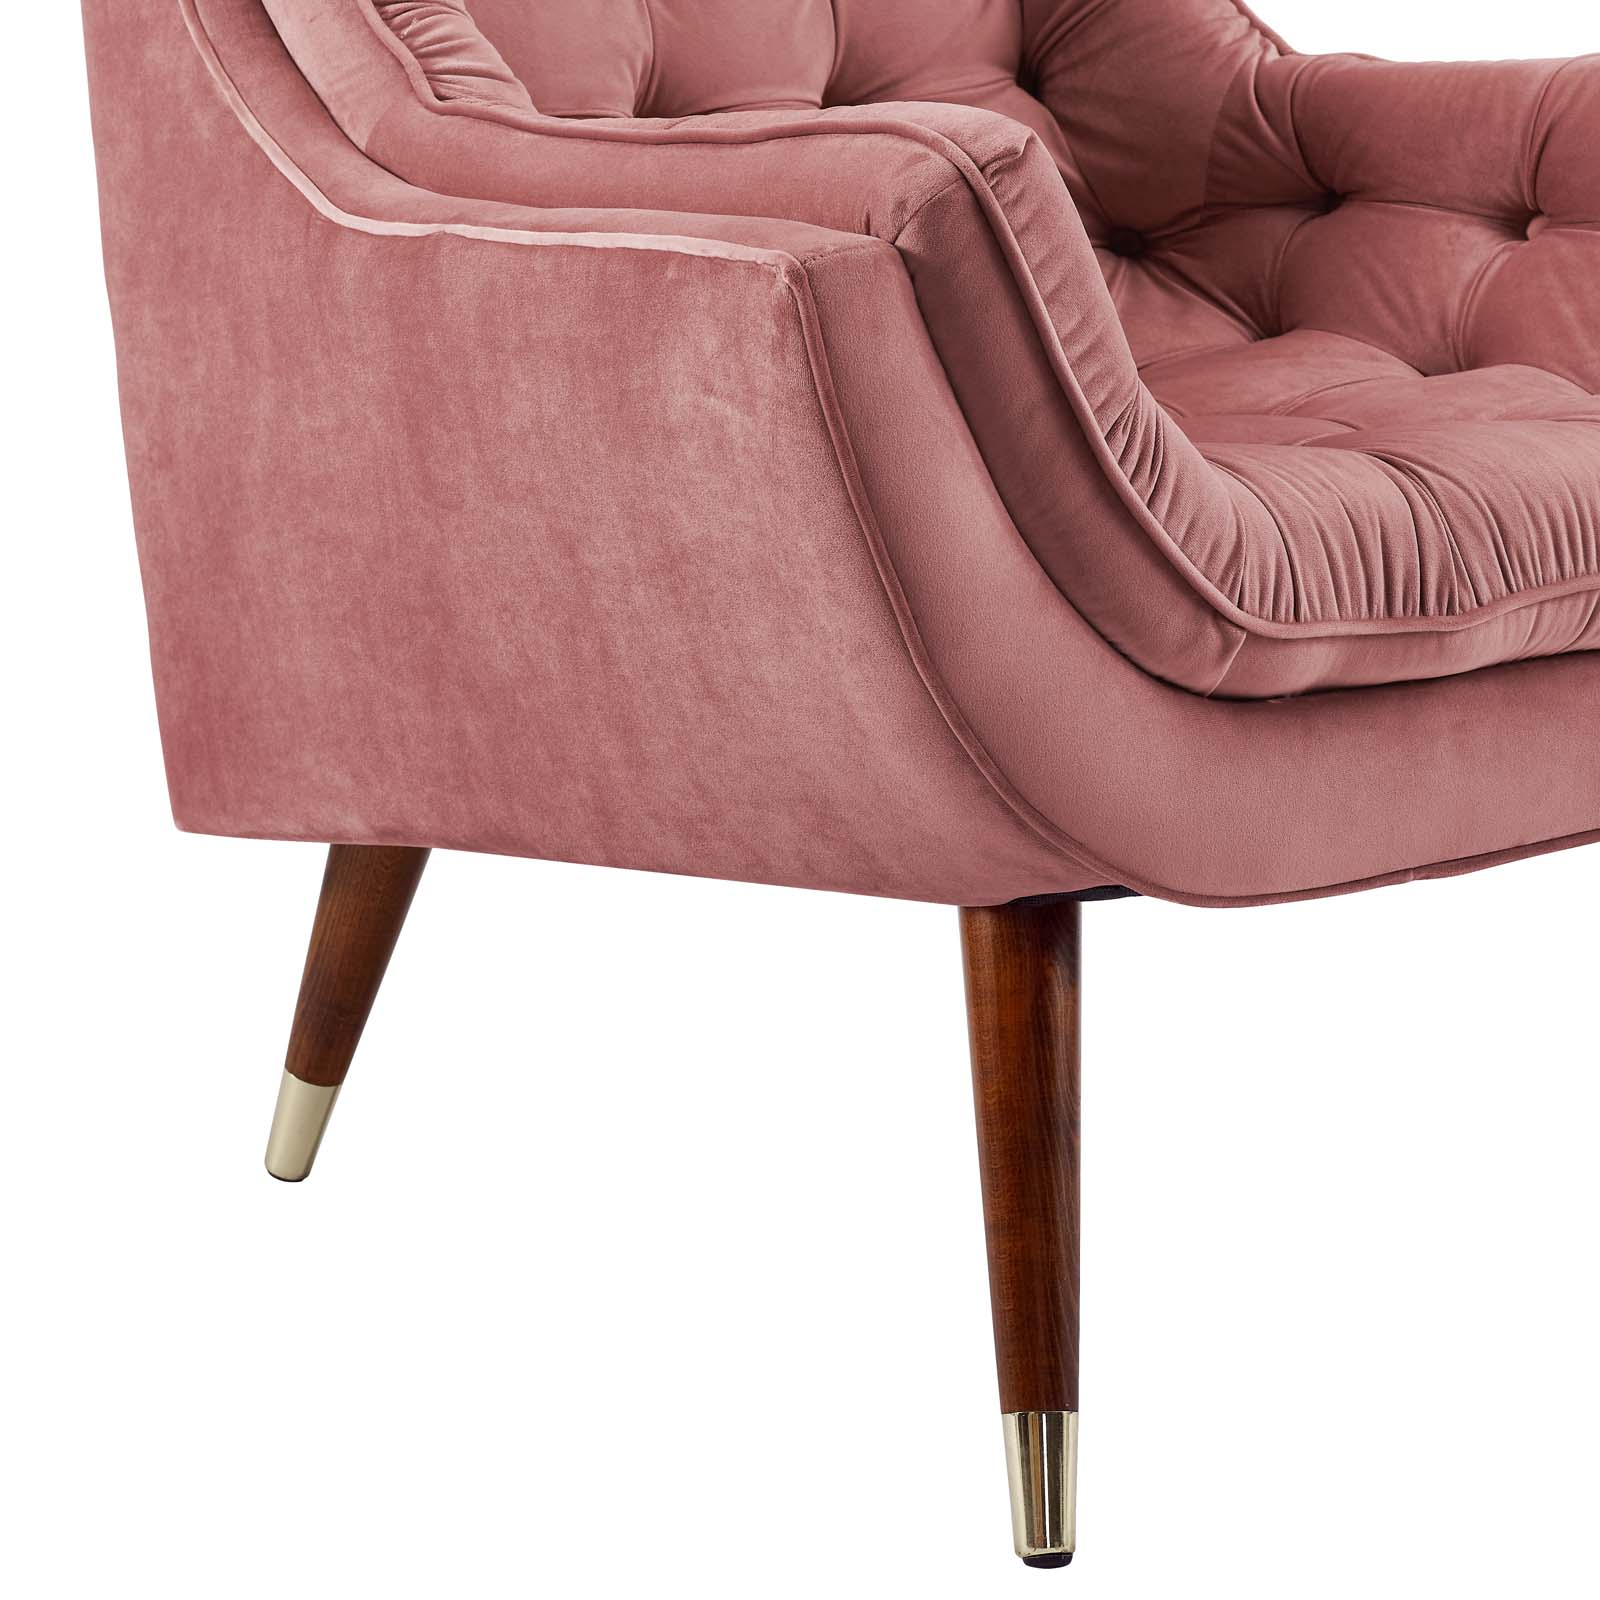 Suggest Button Tufted Upholstered Velvet Lounge Chair